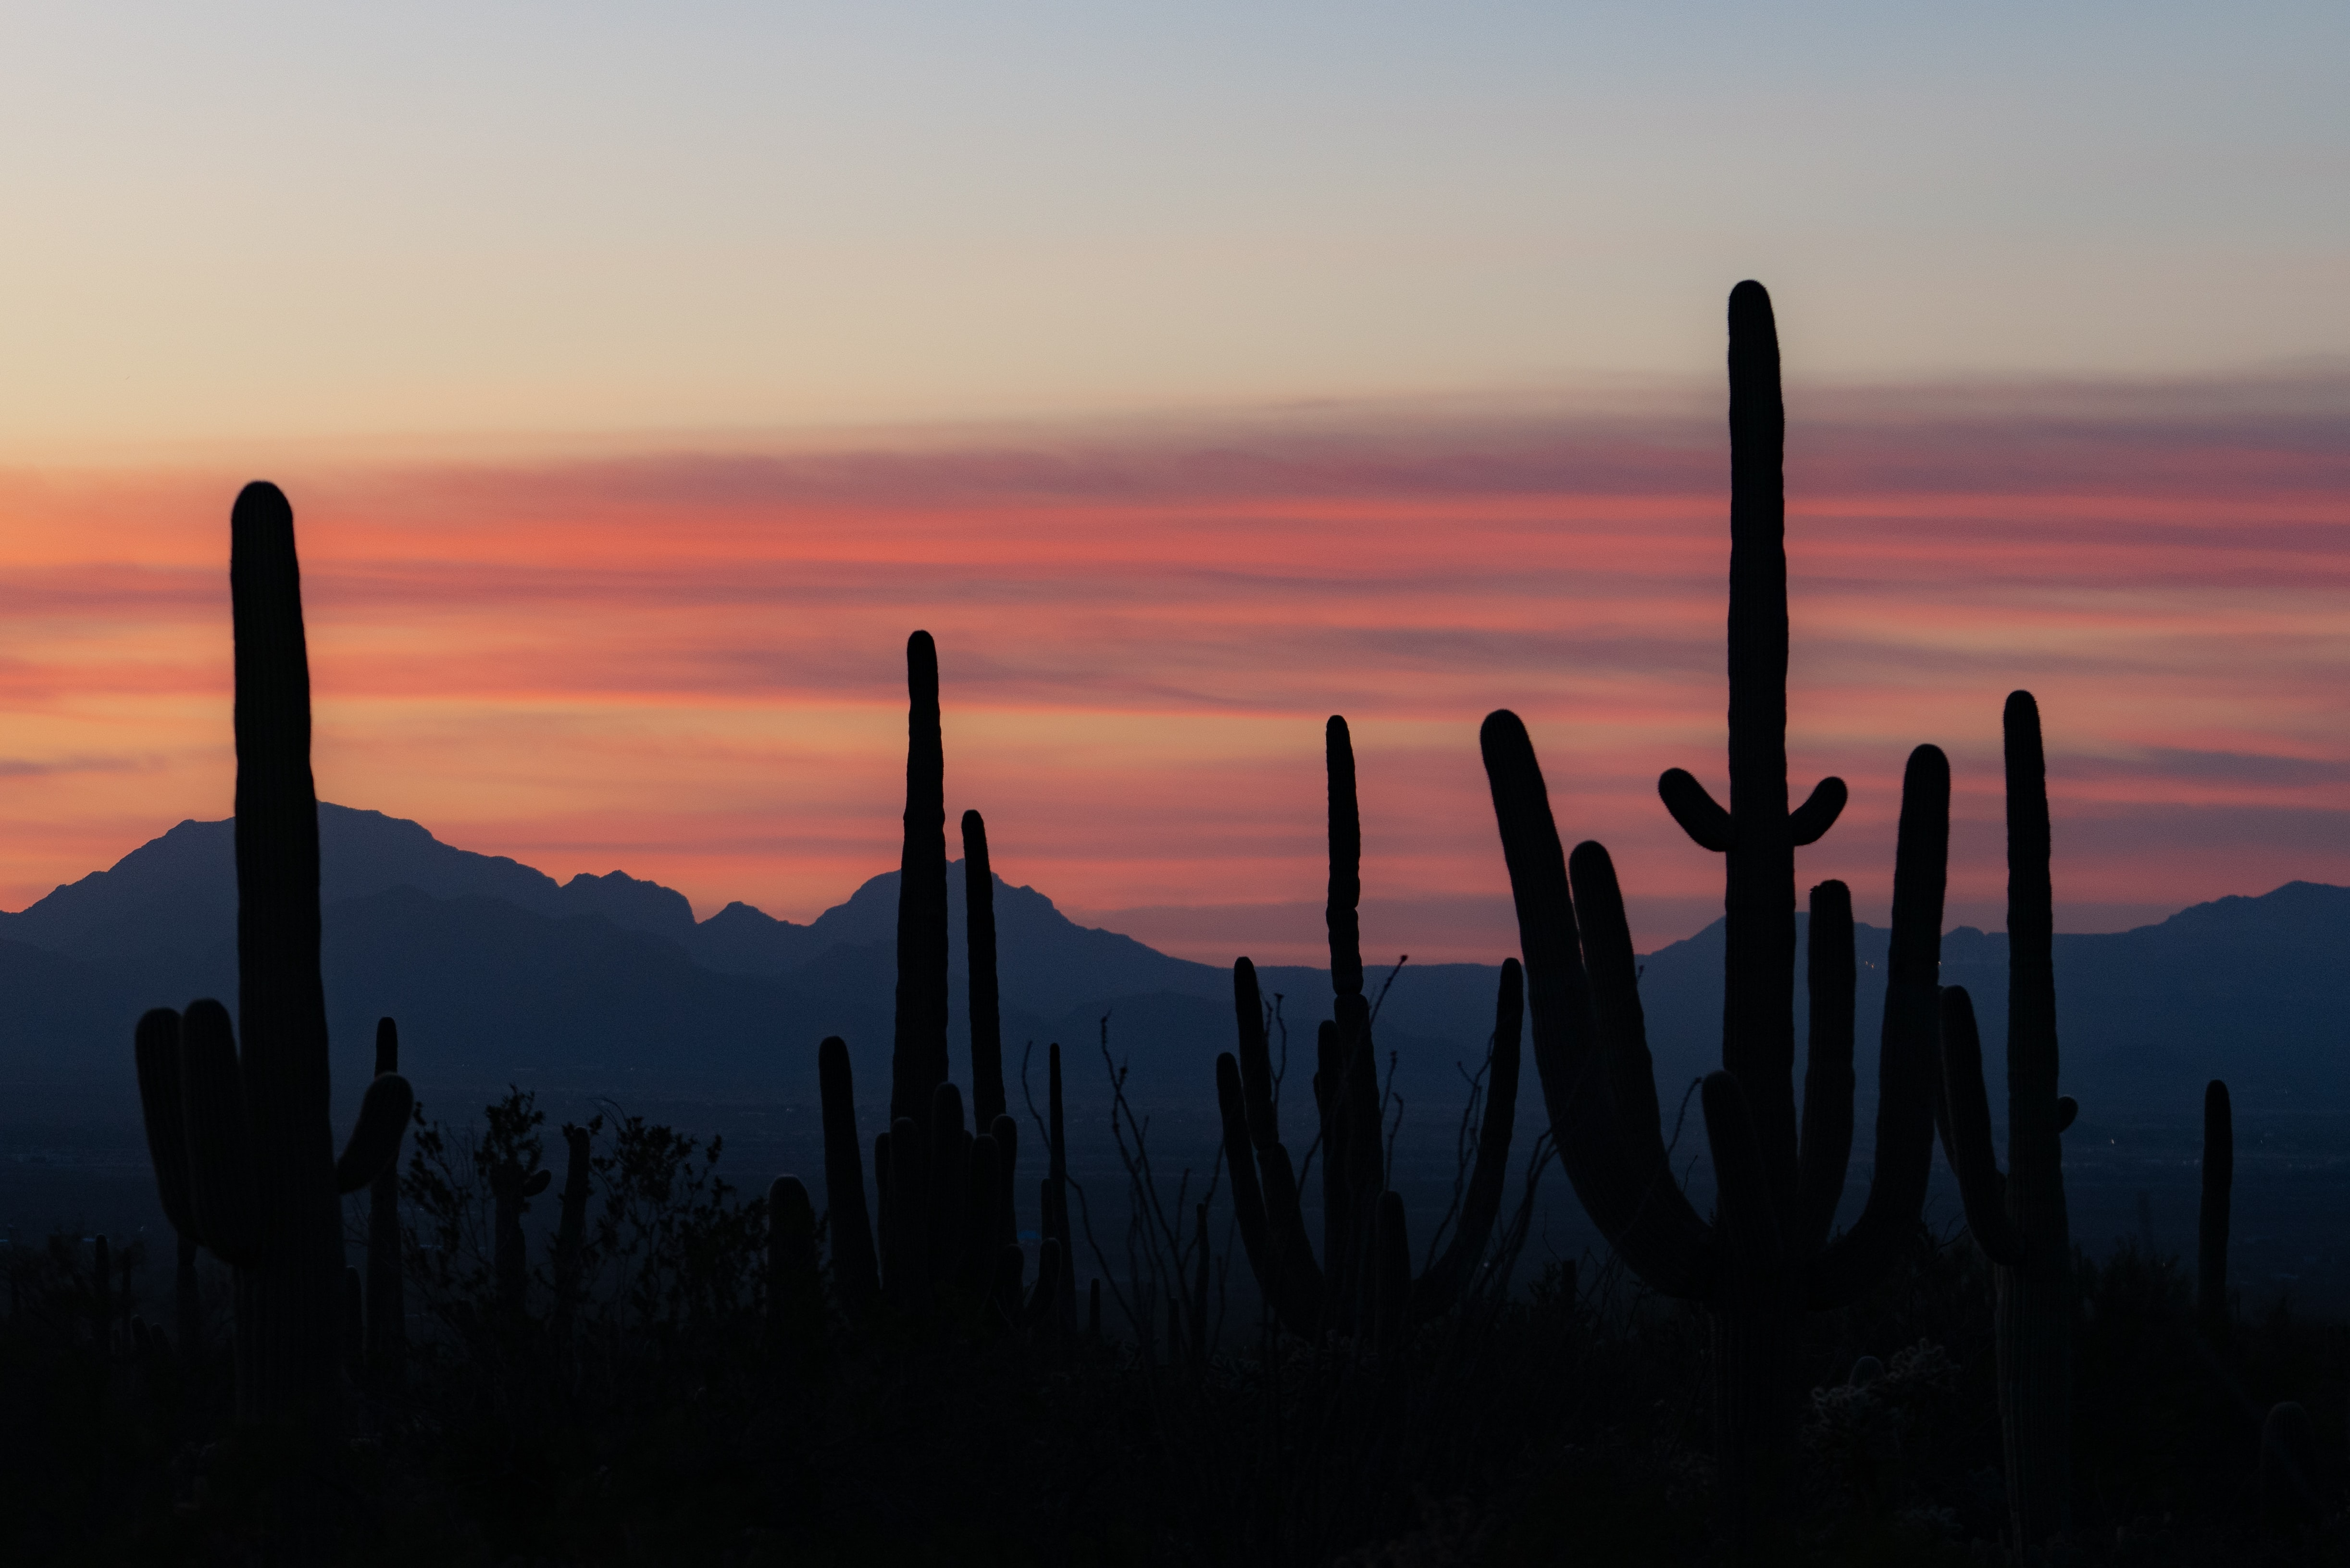 89514 download wallpaper Cactuses, Mountains, Twilight, Dark, Silhouettes, Dusk screensavers and pictures for free